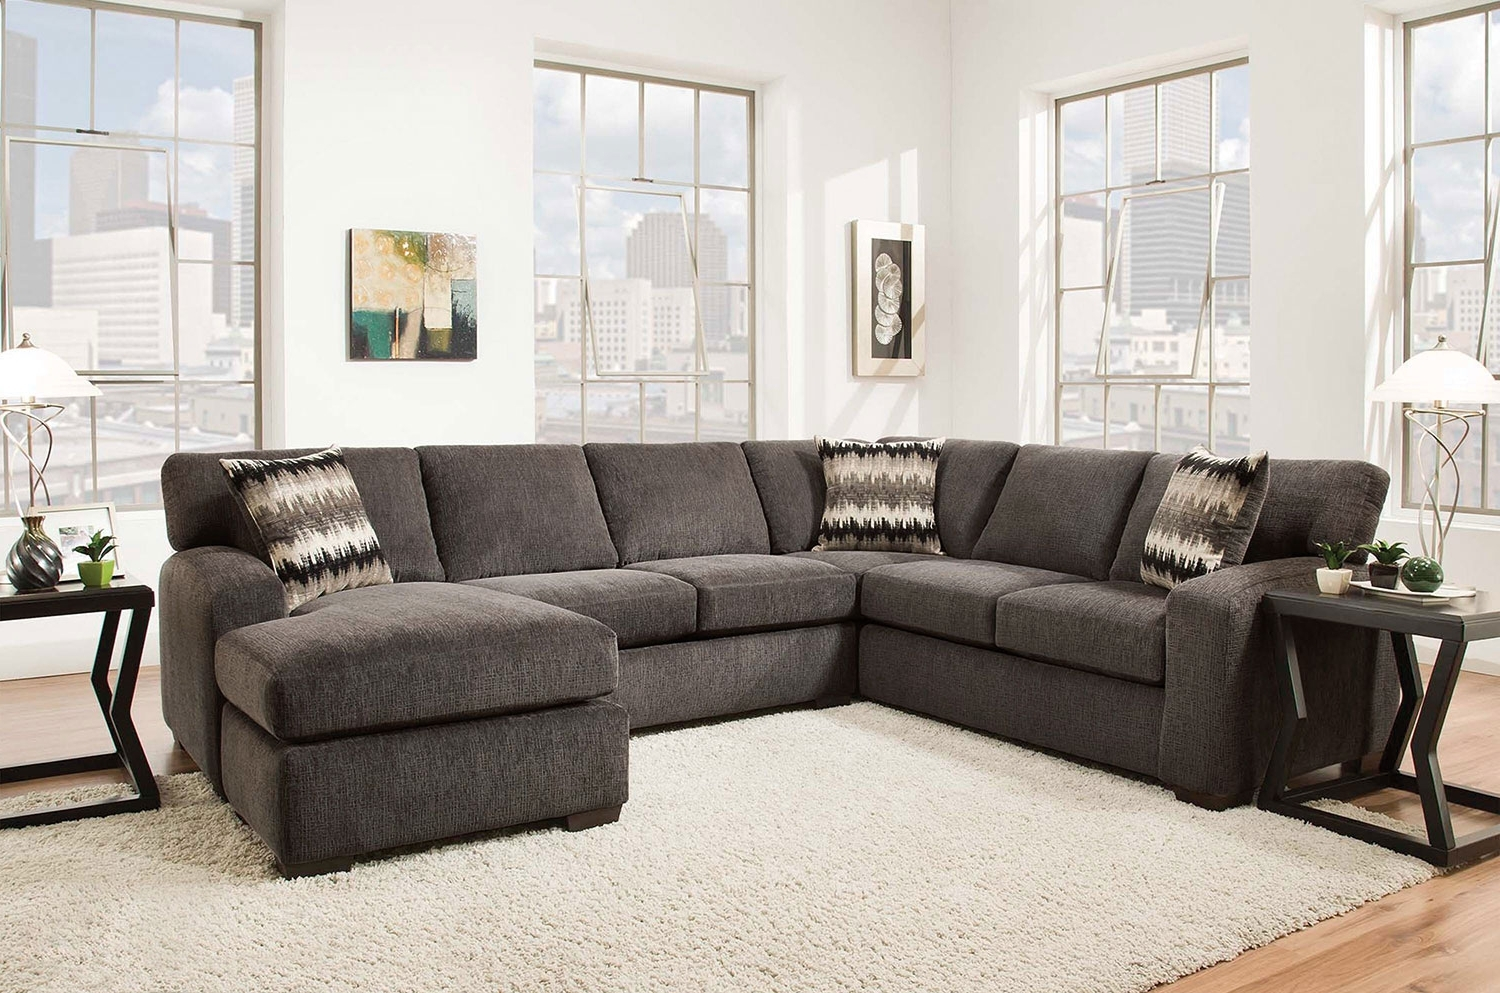 Levin Furniture Pertaining To Pittsburgh Sectional Sofas (View 5 of 15)